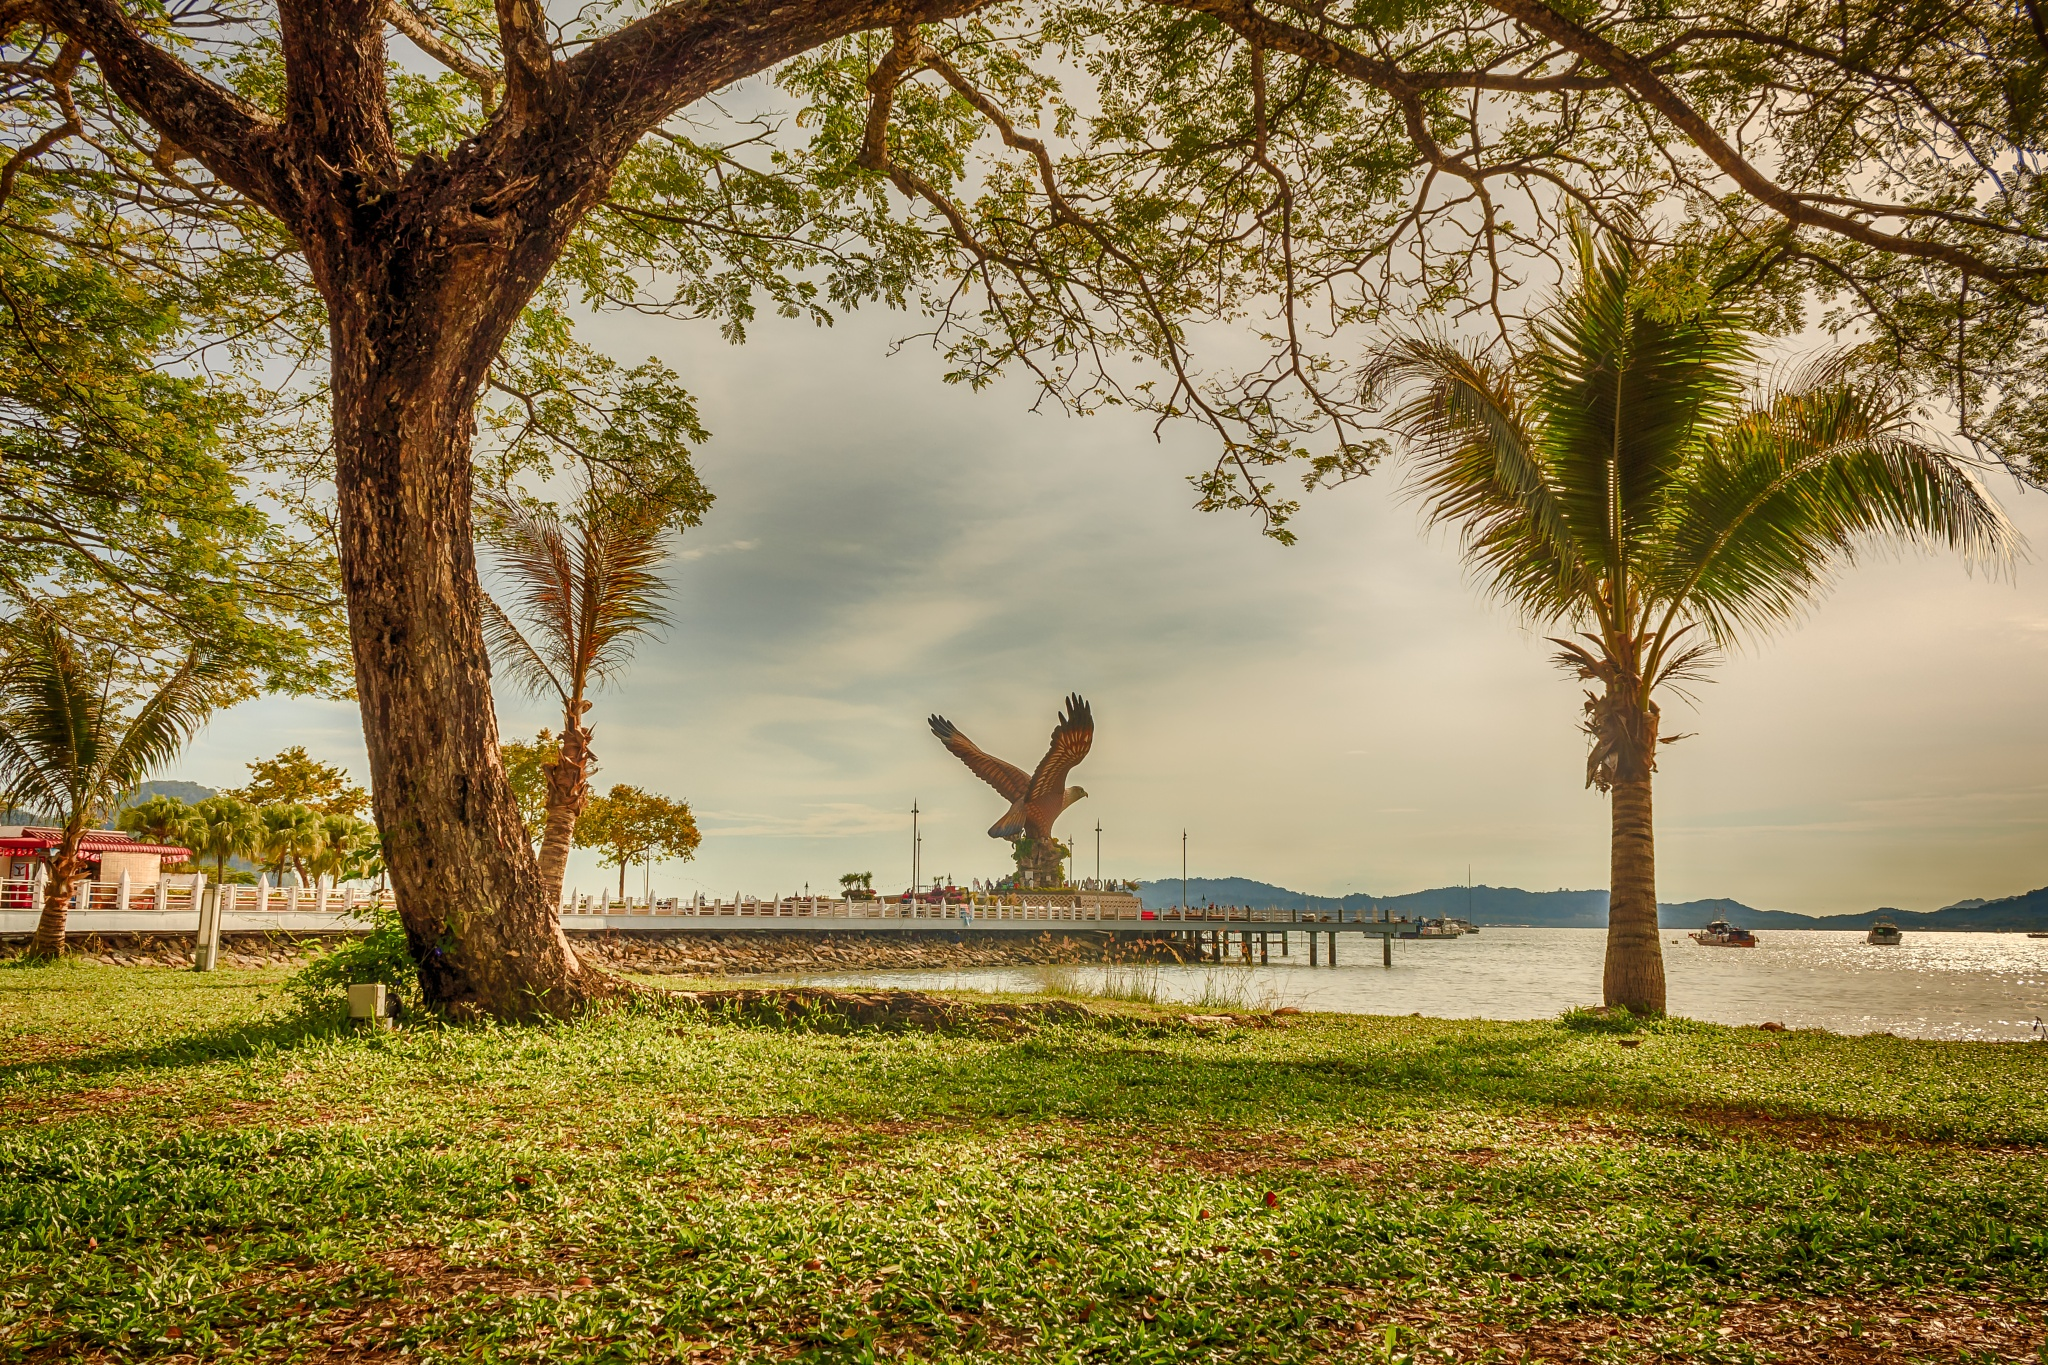 Eagle Square, Langkawi by Mohammed Shamaa